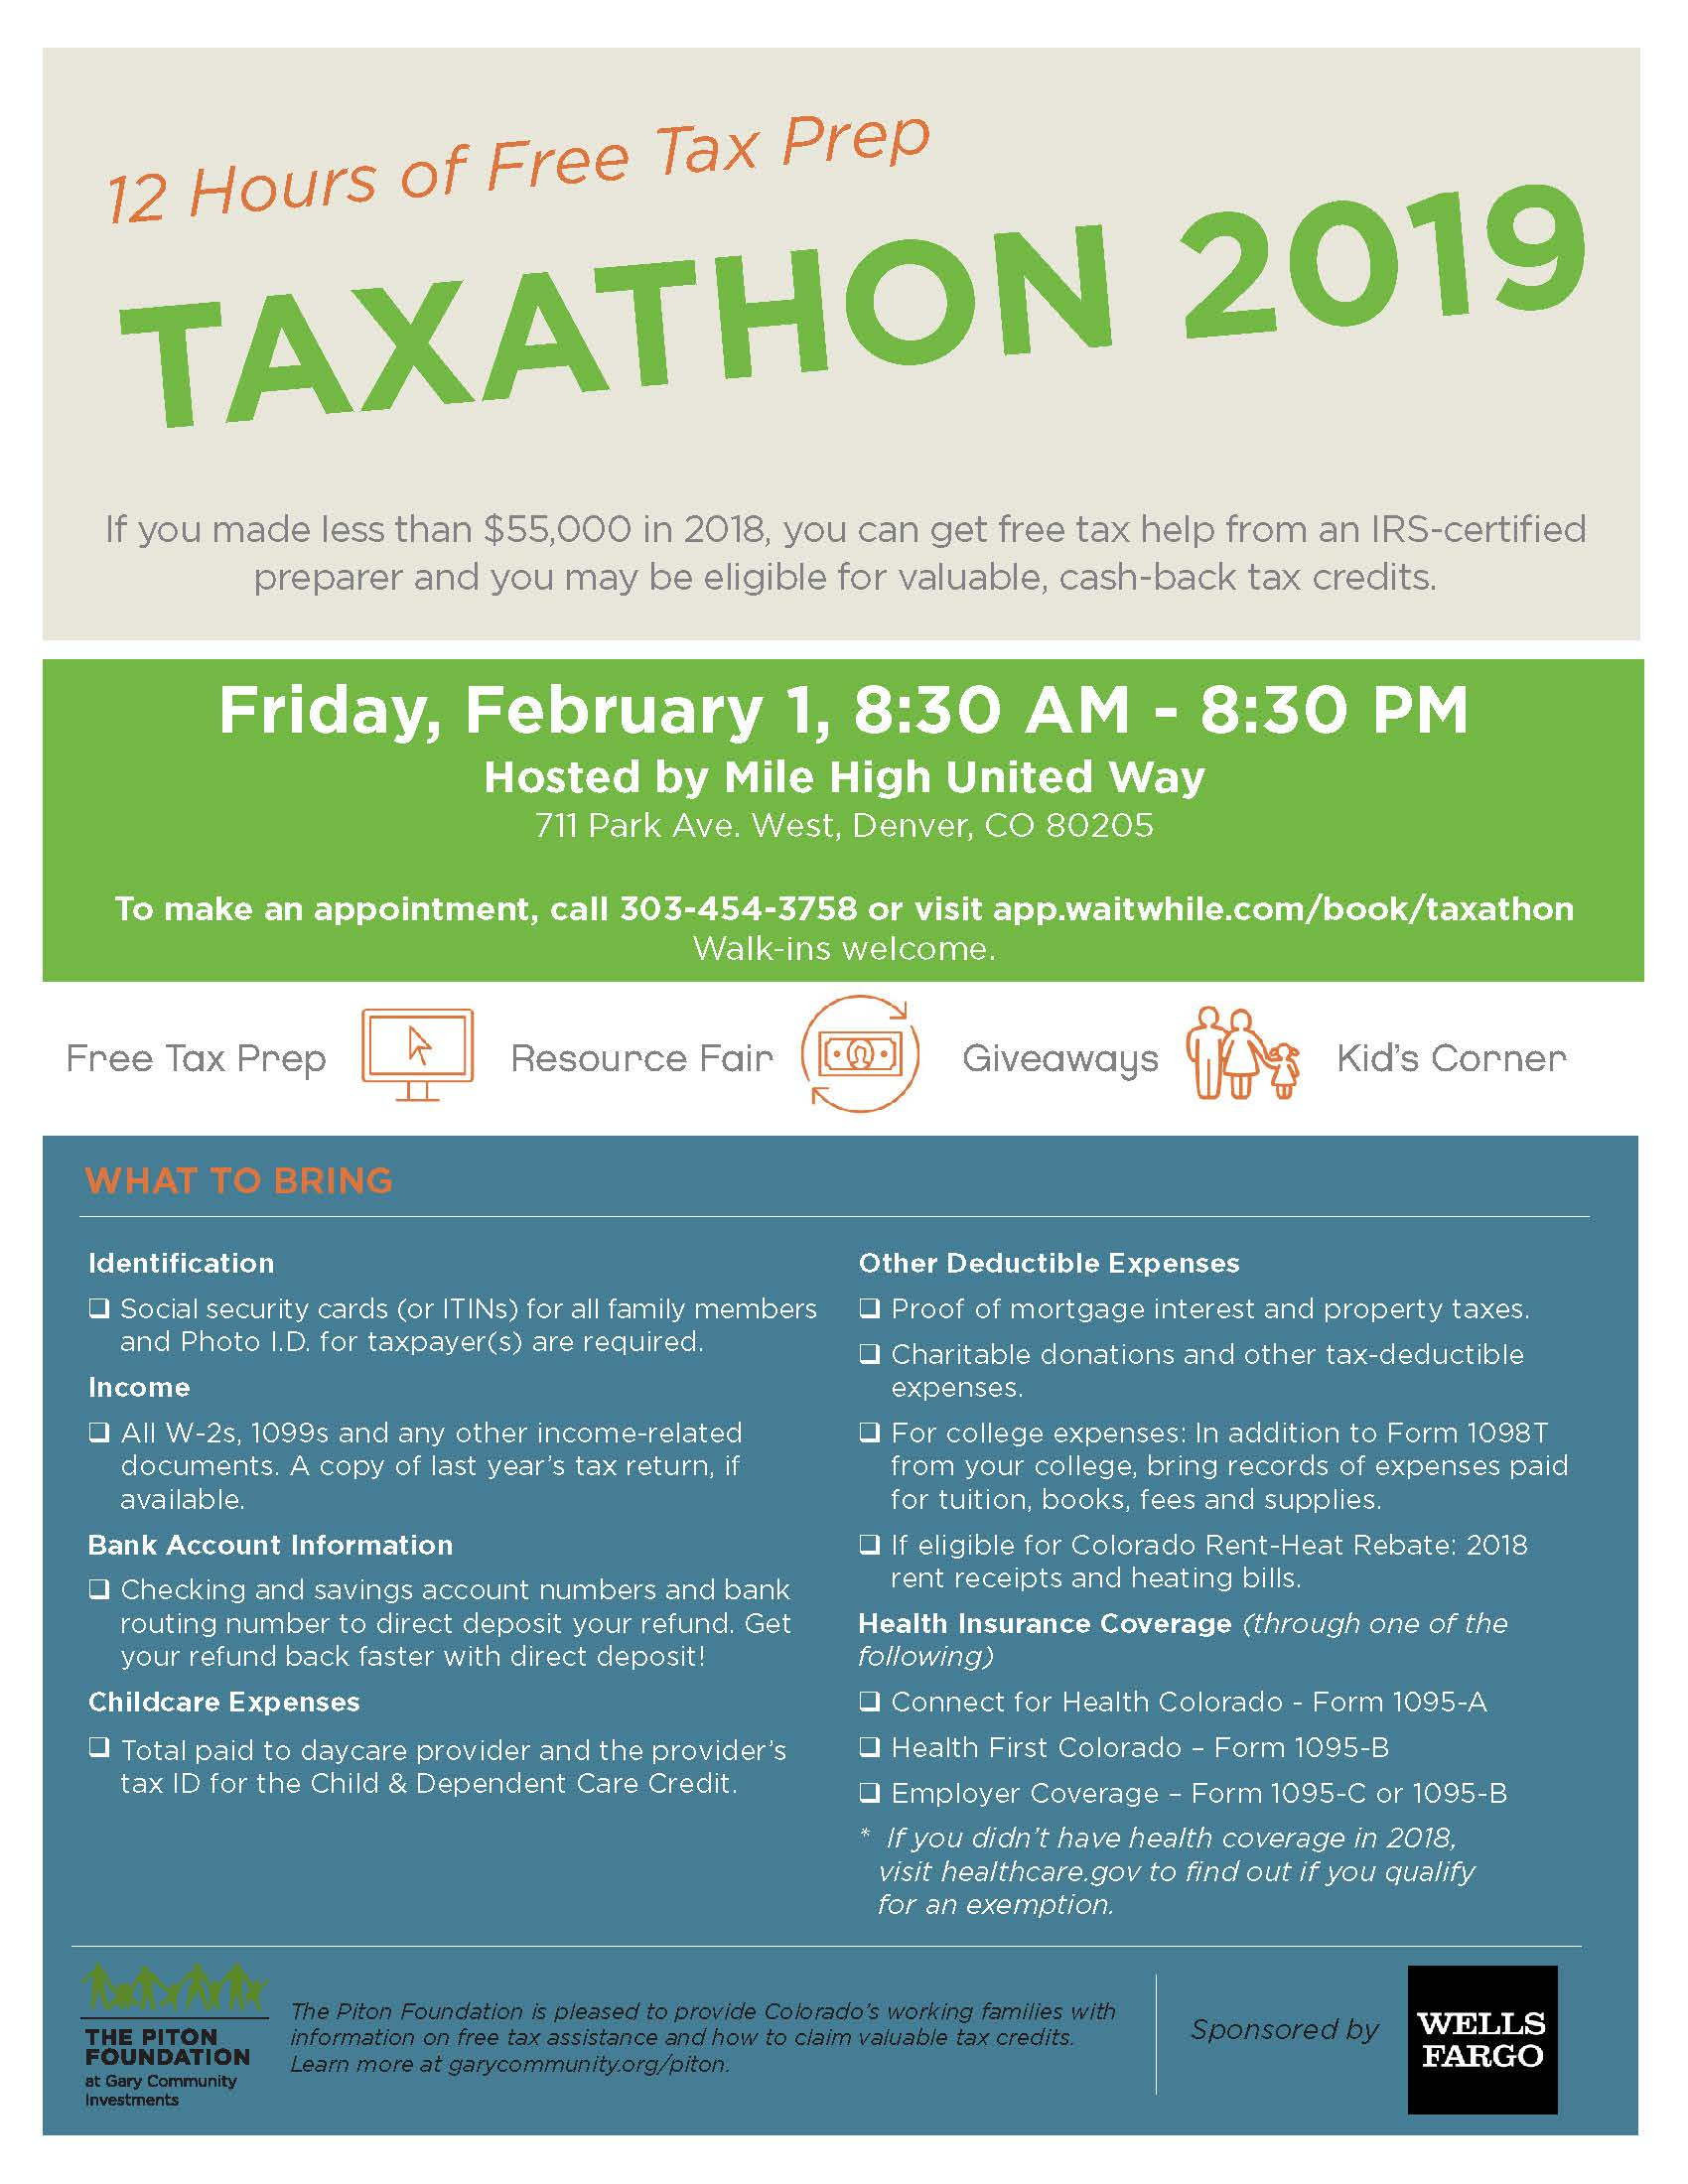 Taxathon 2019 Flier - FINAL.jpg